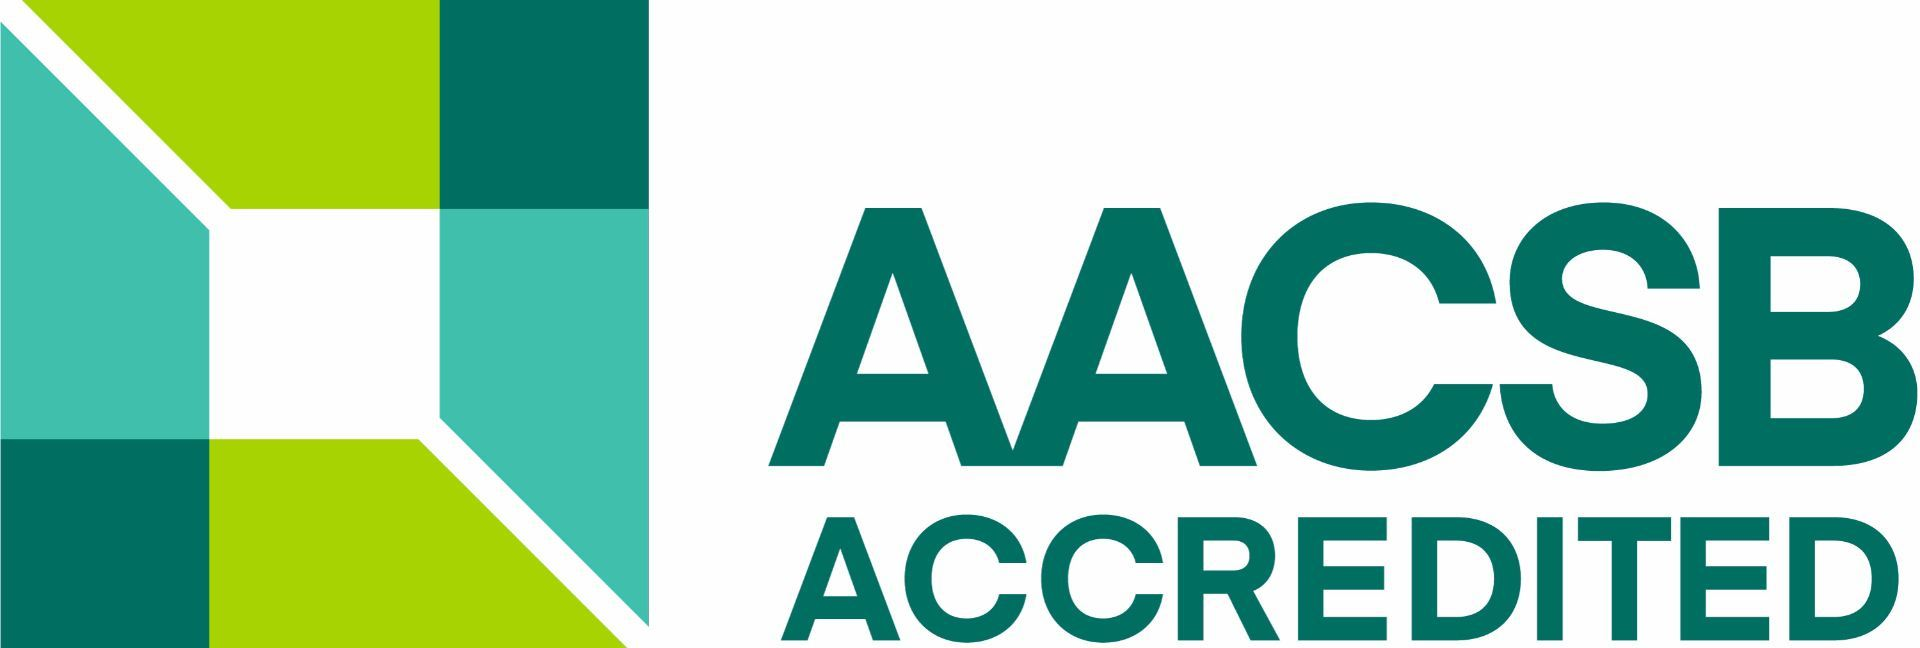 We are AACSB-accredited